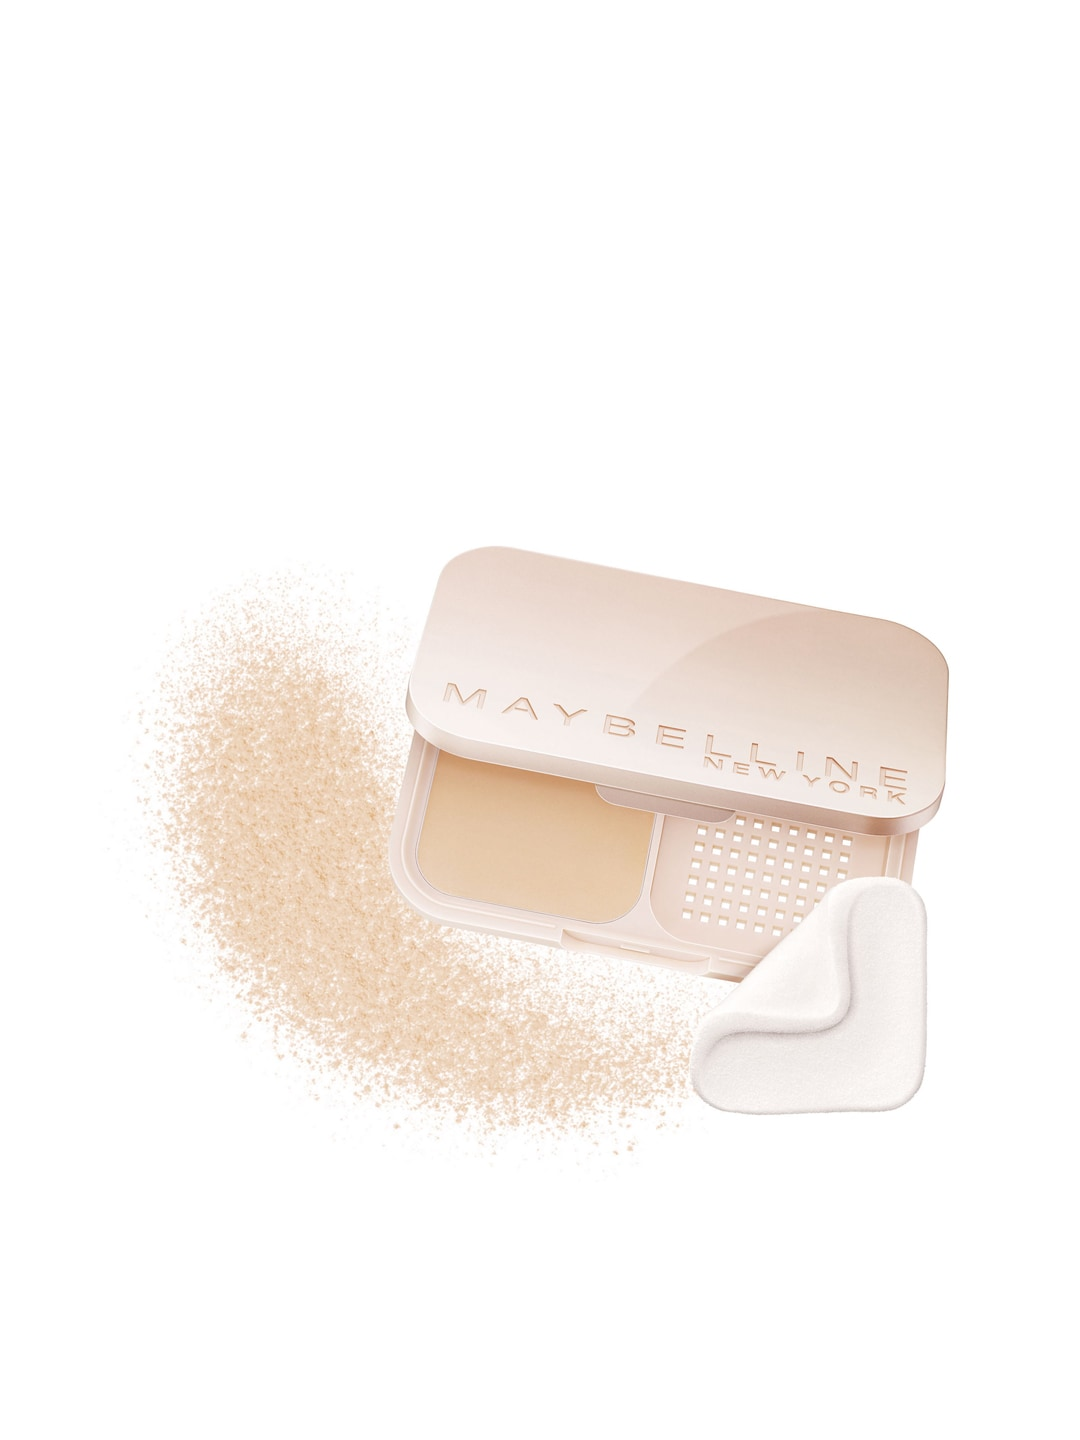 Maybelline Dream Satin Skin 2 Way Cake Sandy Smooth PO3 Foundation image